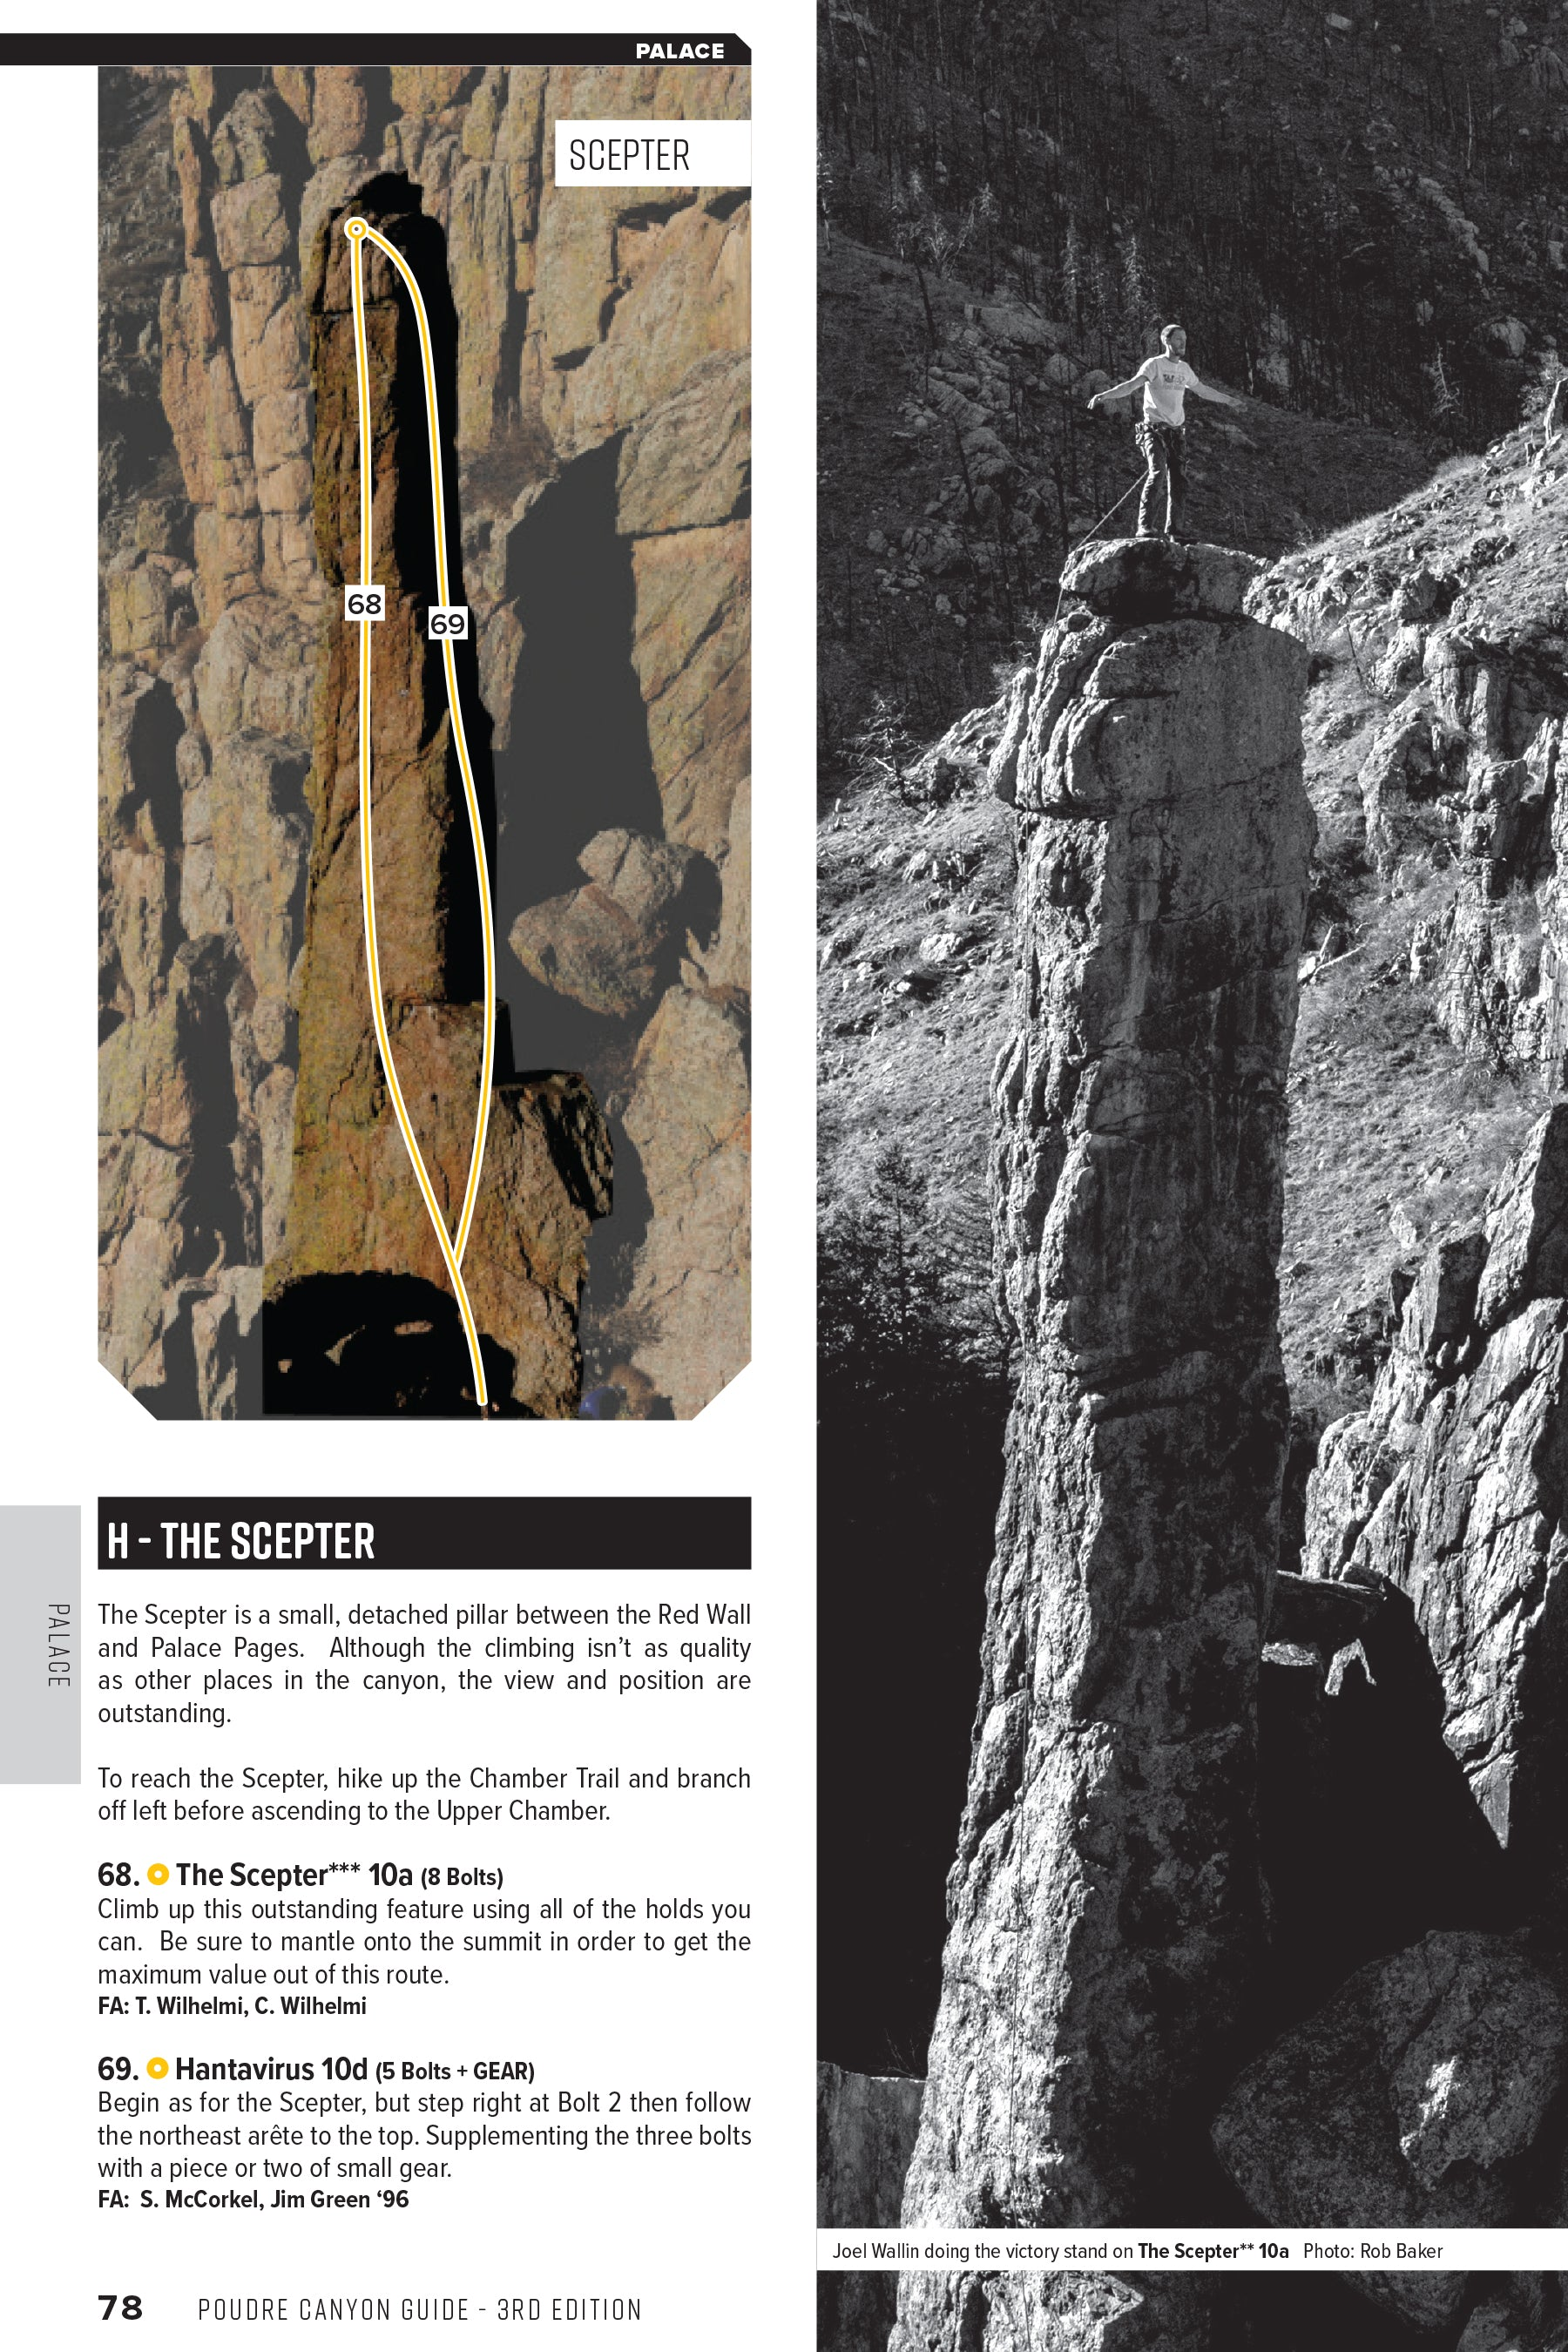 Poudre Canyon (Fort Collins) Guidebook 3rd ed., 2018